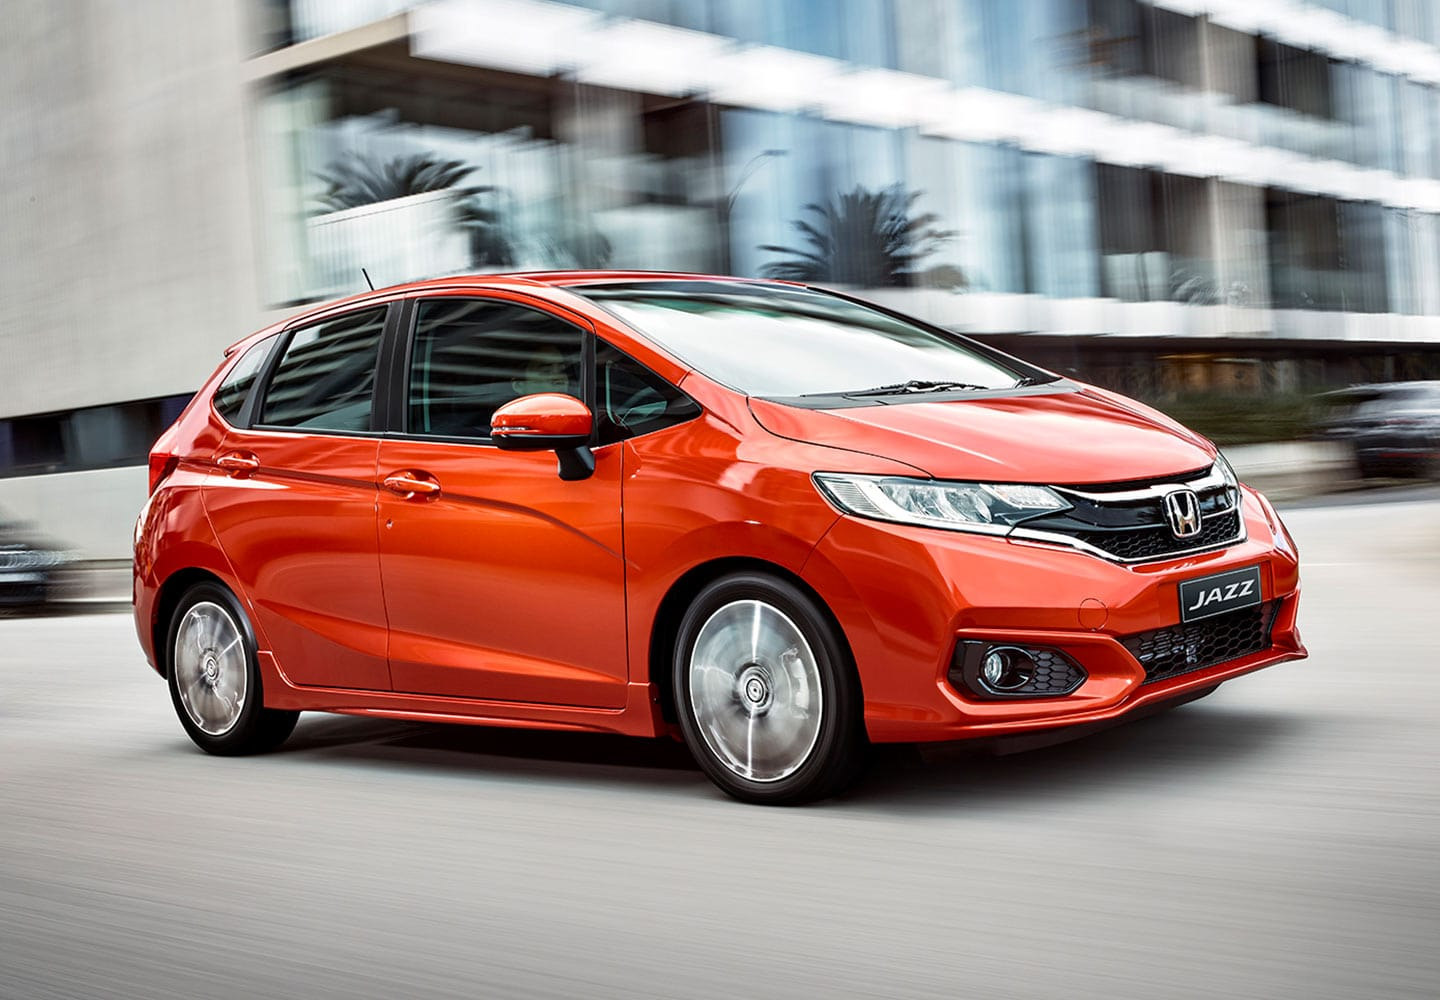 Honda Jazz, A Great Car in a Small Package